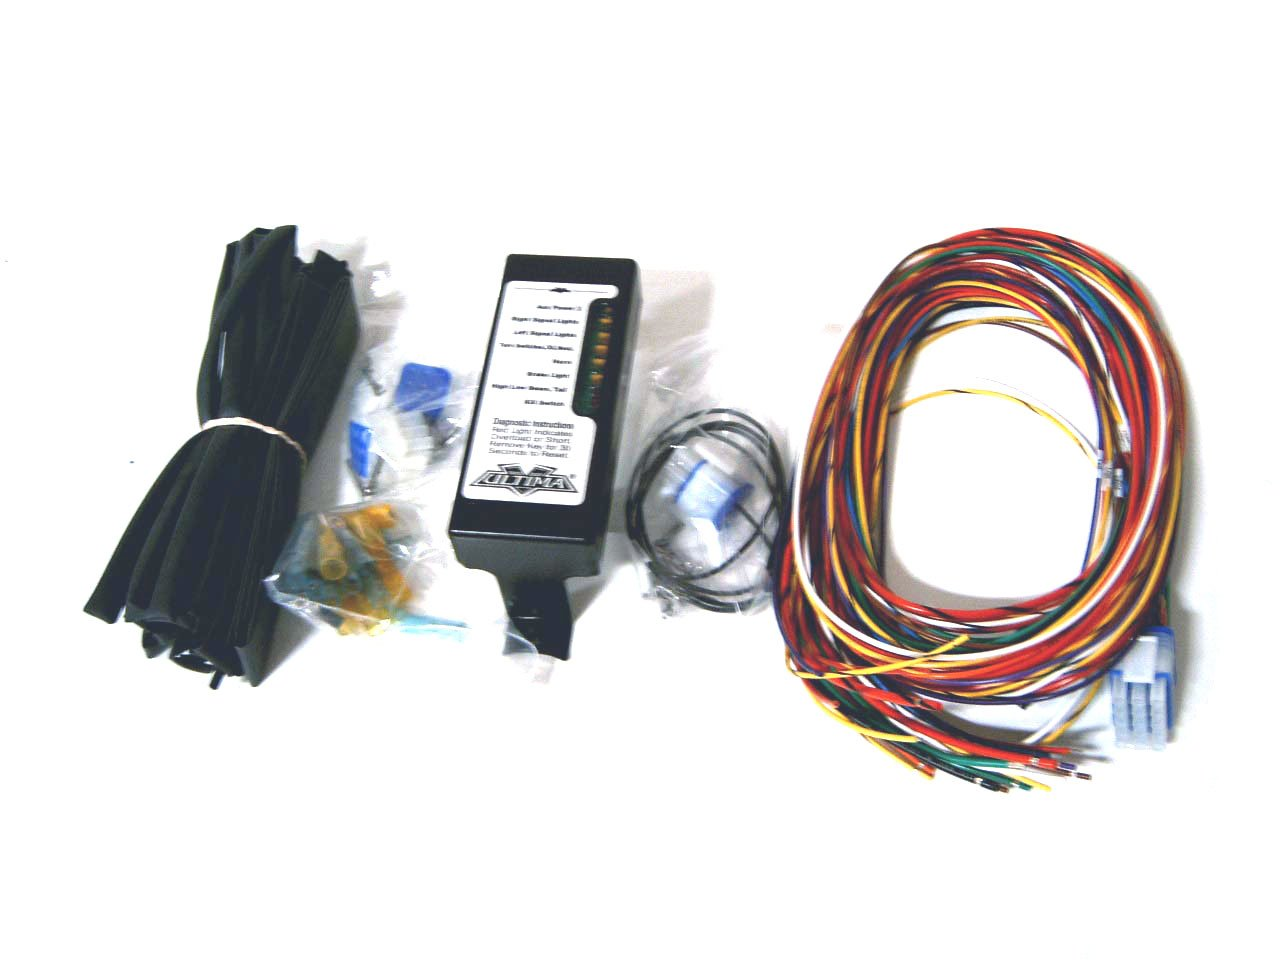 61DV2Bq5%2BHL._SL1280_ amazon com ultima complete wiring harness kit for harley davidson where to buy a trailer wiring harness at bayanpartner.co